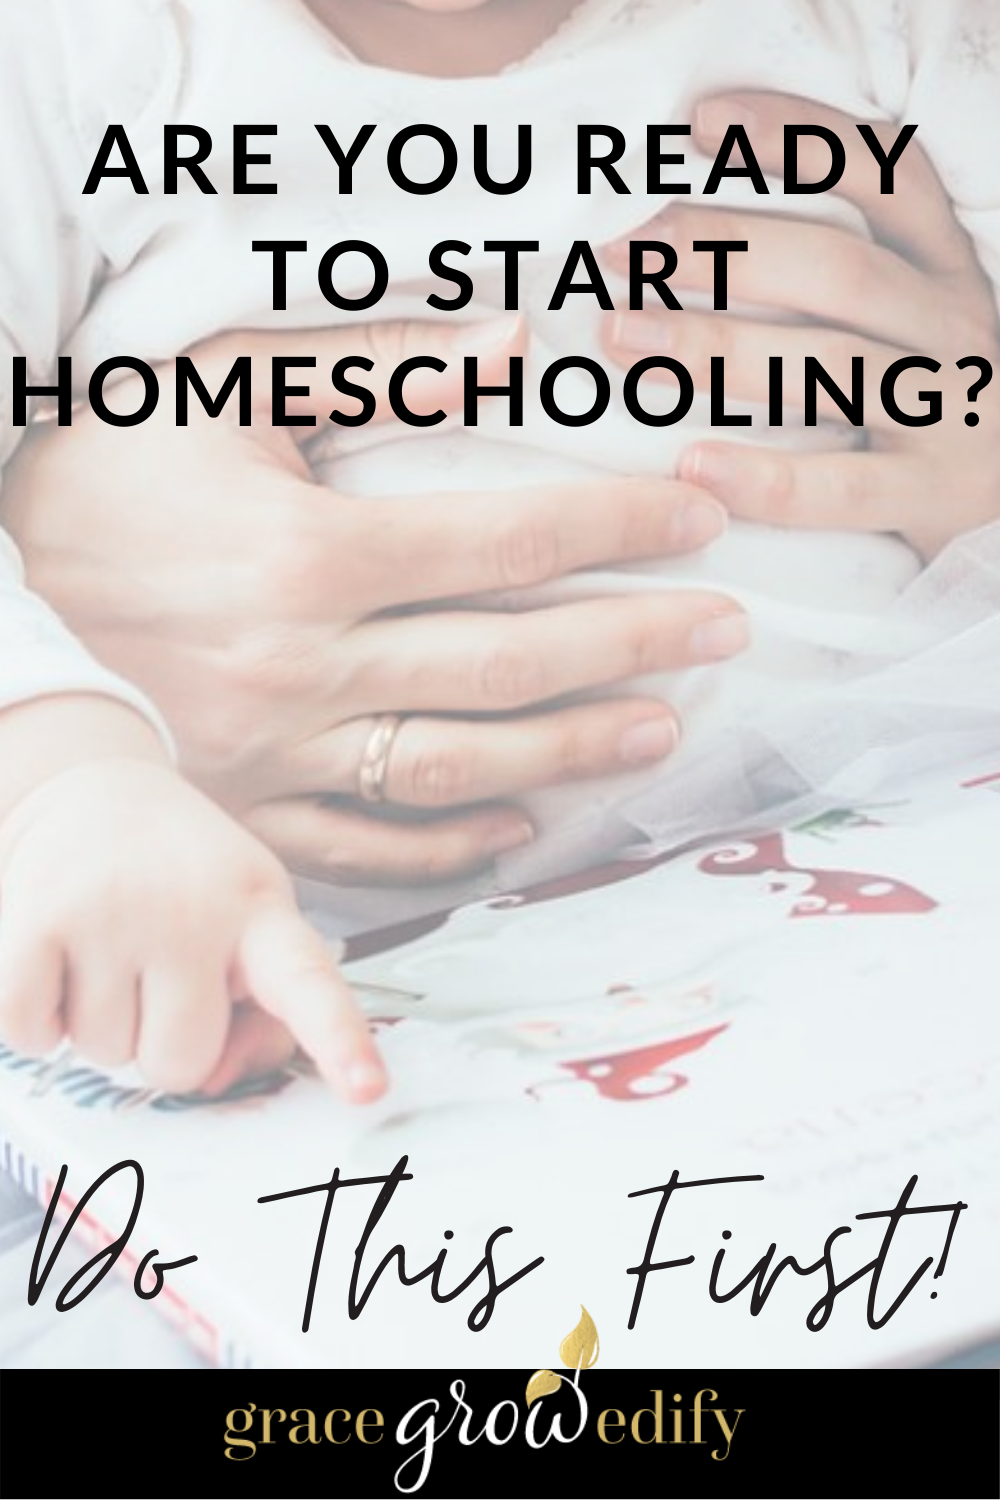 Are you ready to start homeschooling? Here are 5 important things that you should do first! #homeschool #homeschooling #starthomeschooling